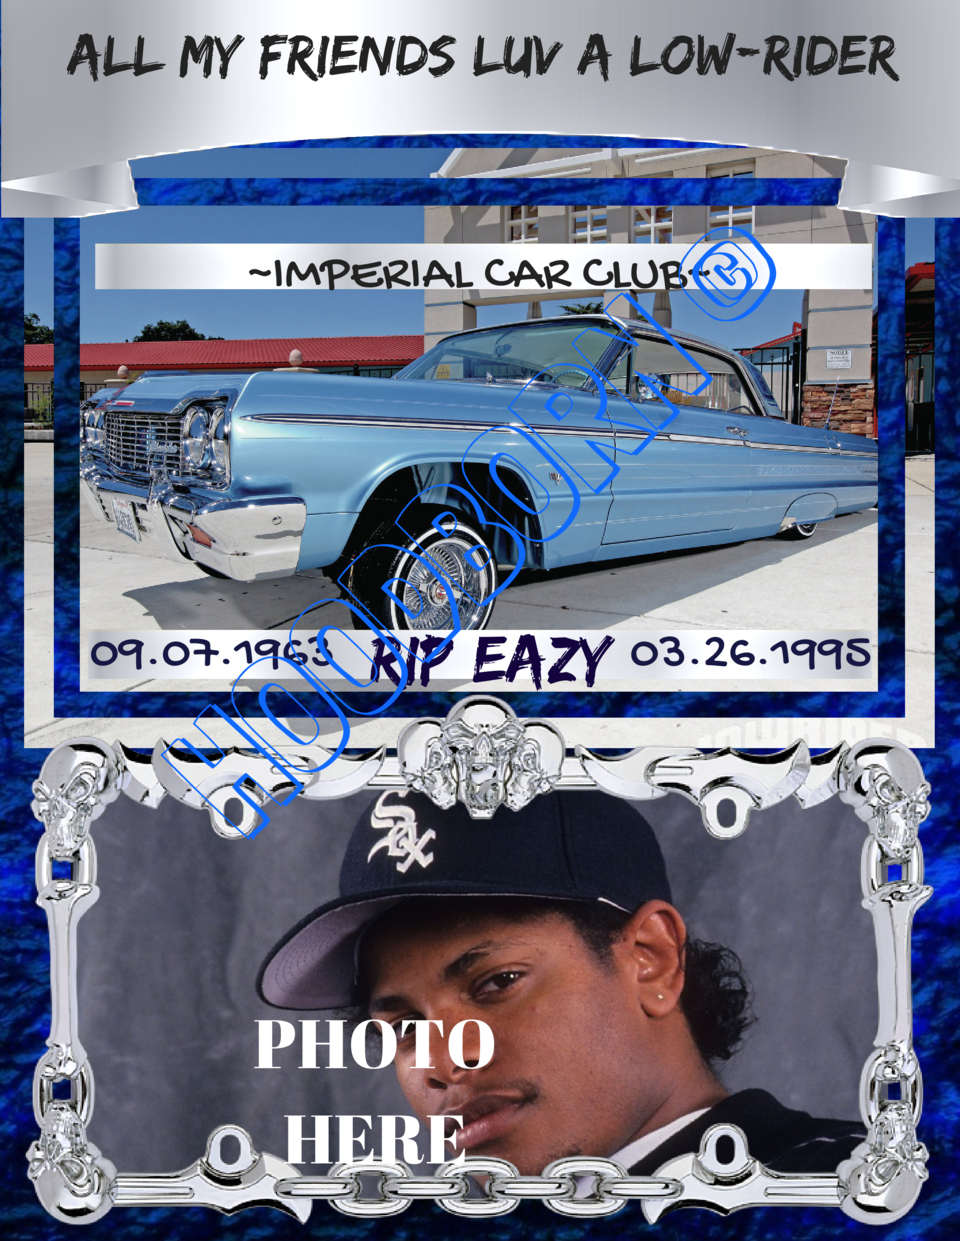 aLL mY fRIENDS lUV A lOW-rIDER  HO OD BO RN      IMPERIAL CAR CLUB   09.07.1963  RIP EAZY 03.26.1995  PHOTO HERE